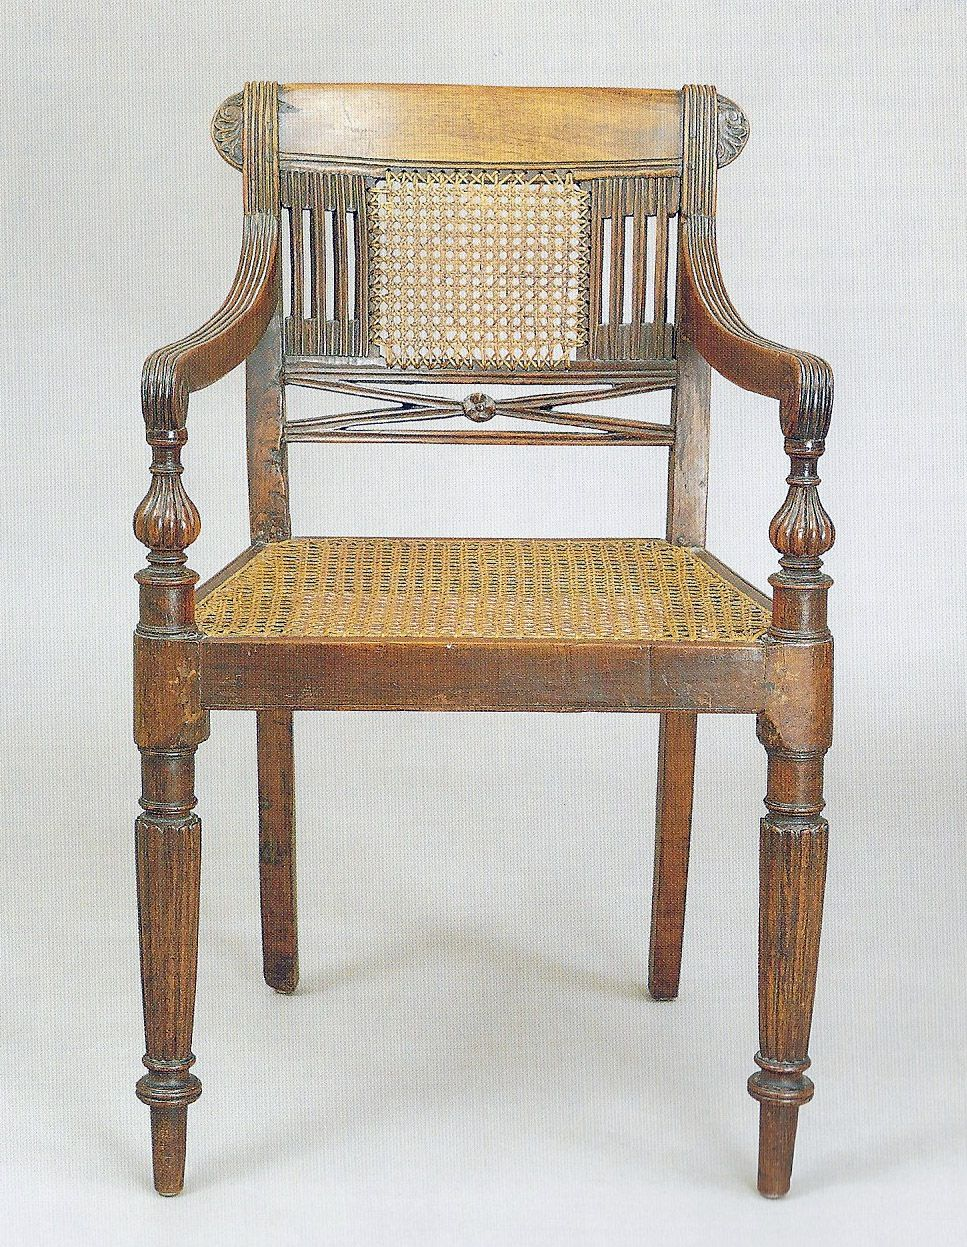 India armchair anglo raj antiques amin jaffer furniture from british india and ceylon